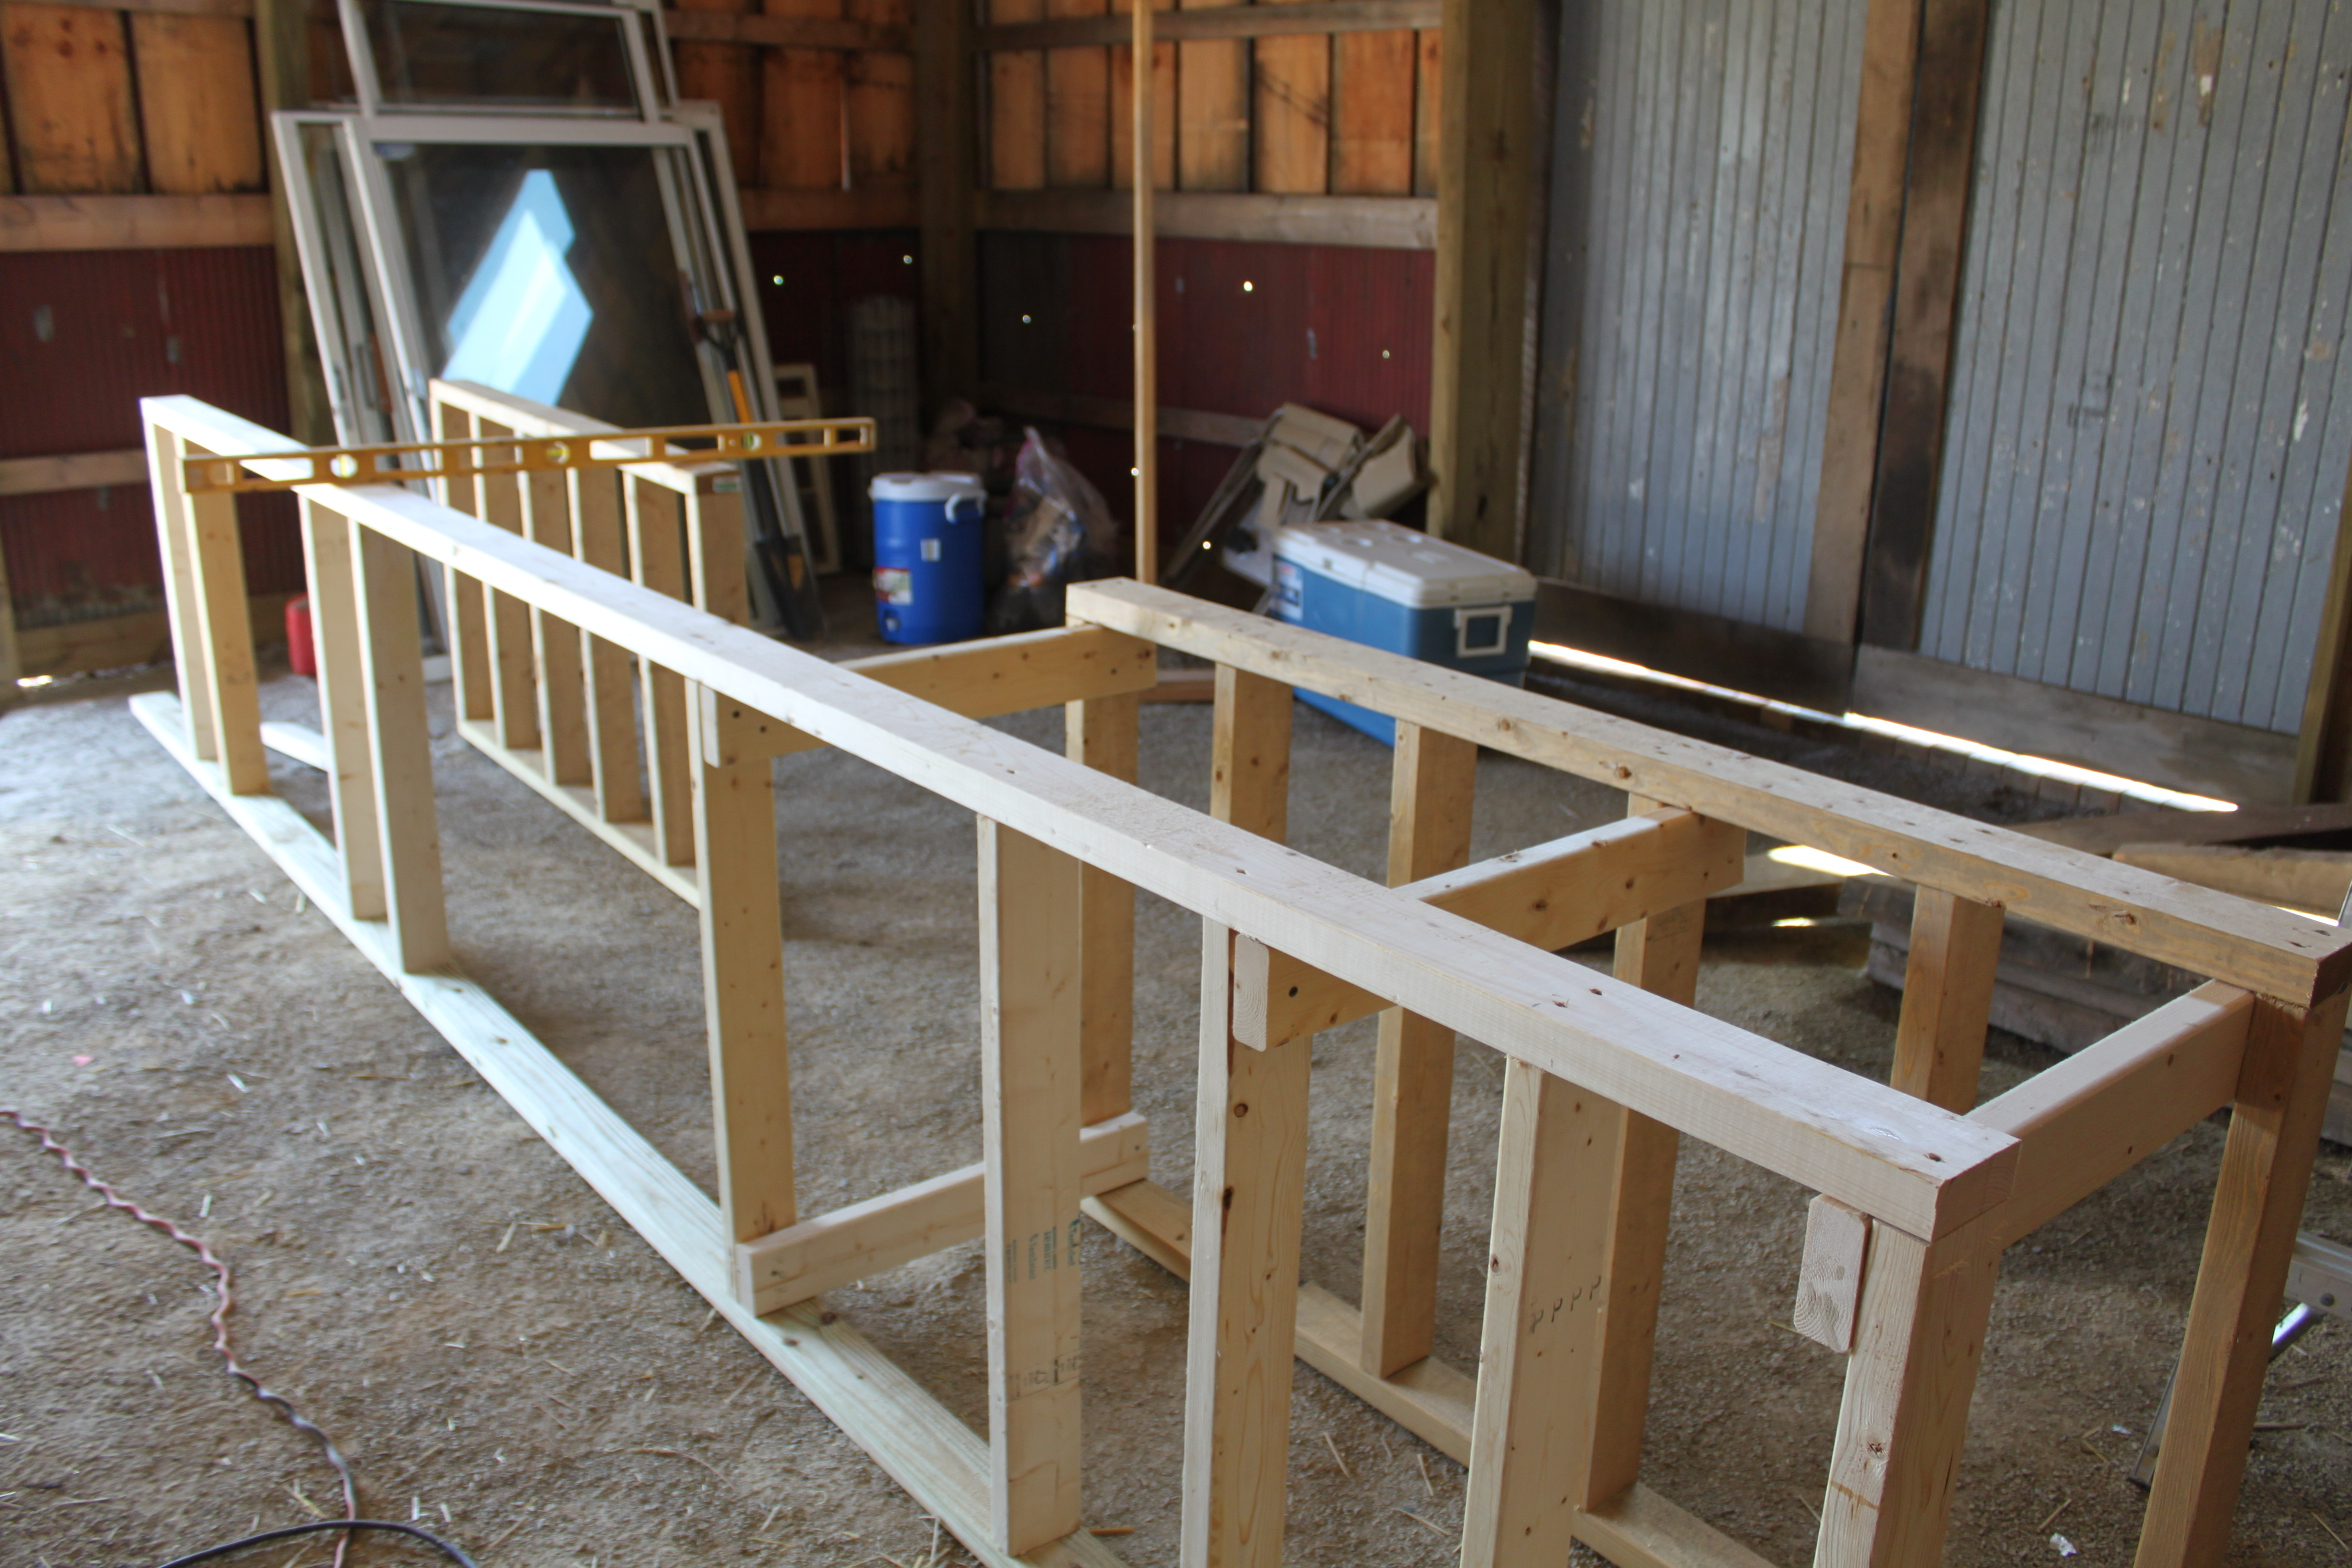 We Started By Making The Frame From 2 X 4 S Using Treated Lumber